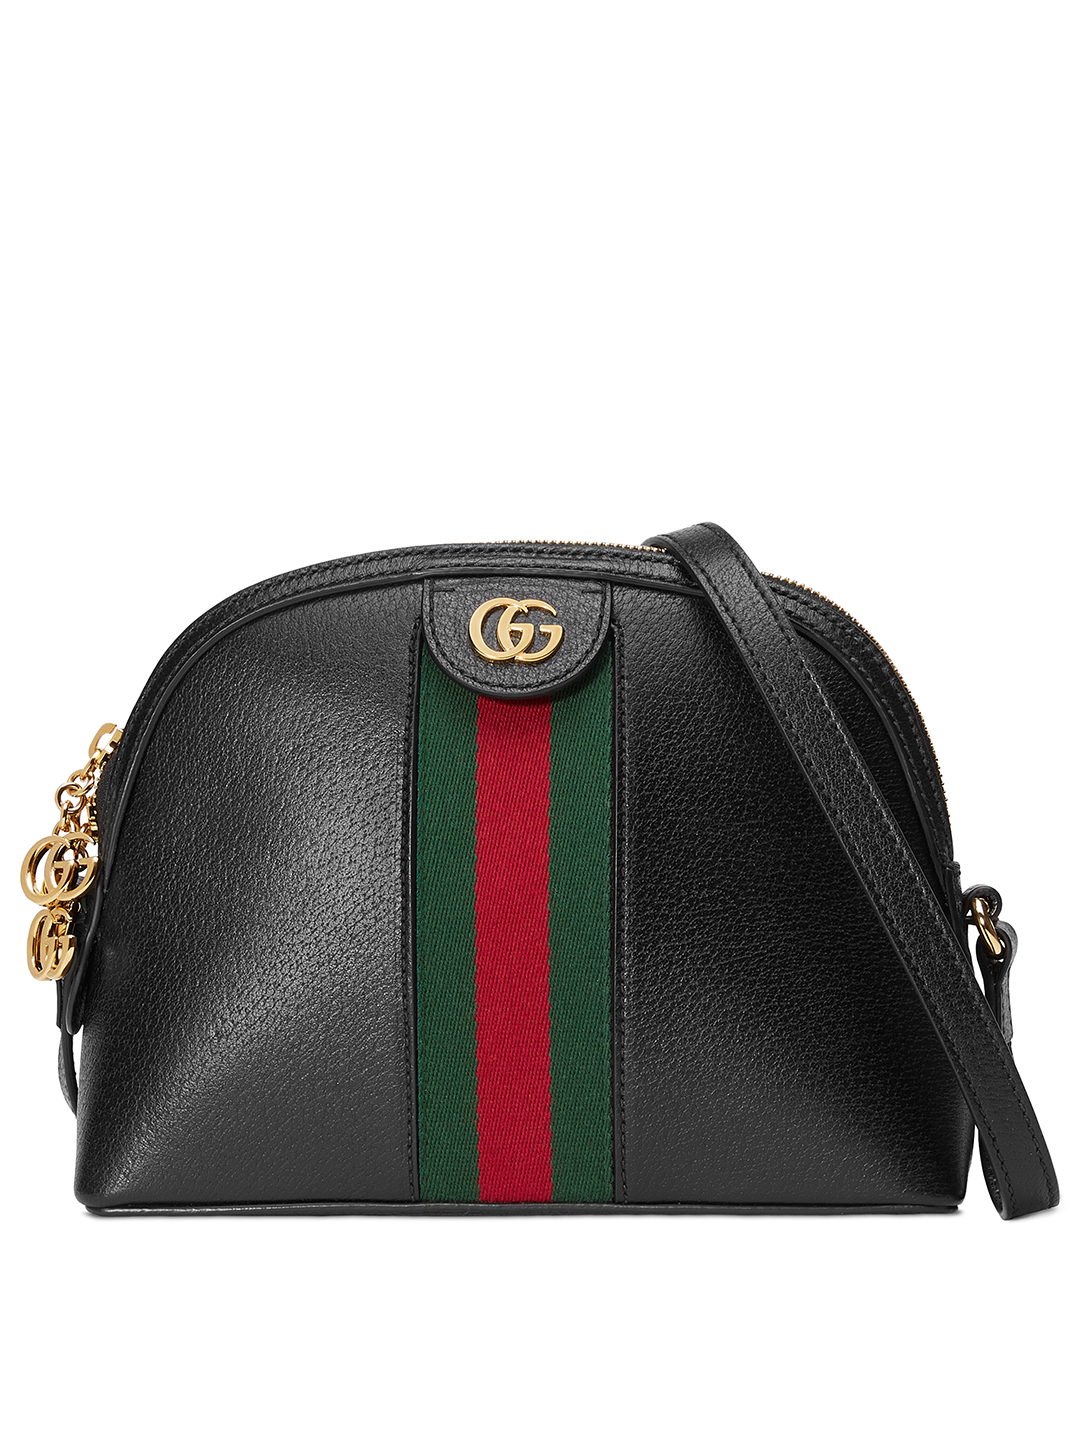 GUCCI Small Ophidia Leather Shoulder Bag Women's Black